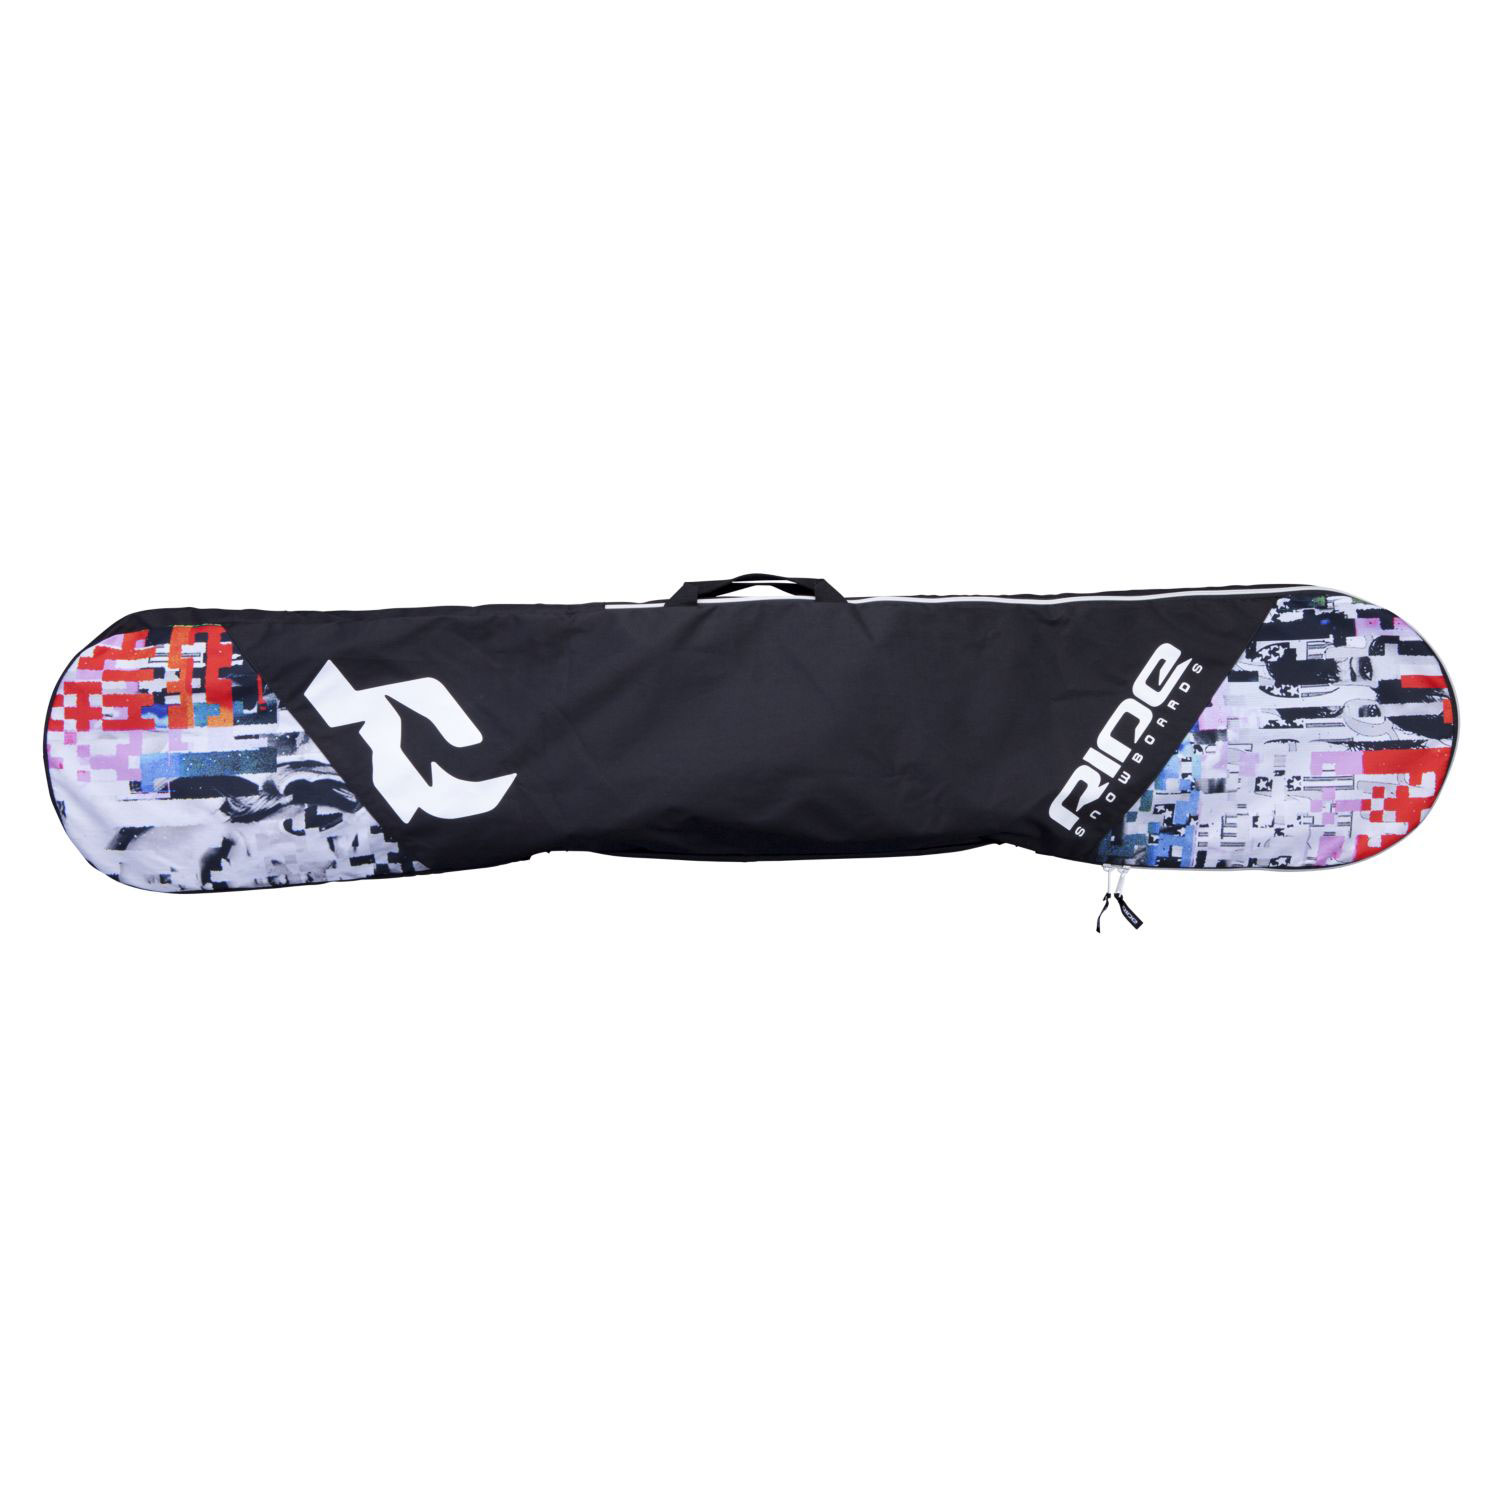 Snowboard Key Features of the Ride Unforgiven Board Sleeve Bag: Minor Abrasion Board Protection Secure Zipper Closure Center Tow Handle - $34.95